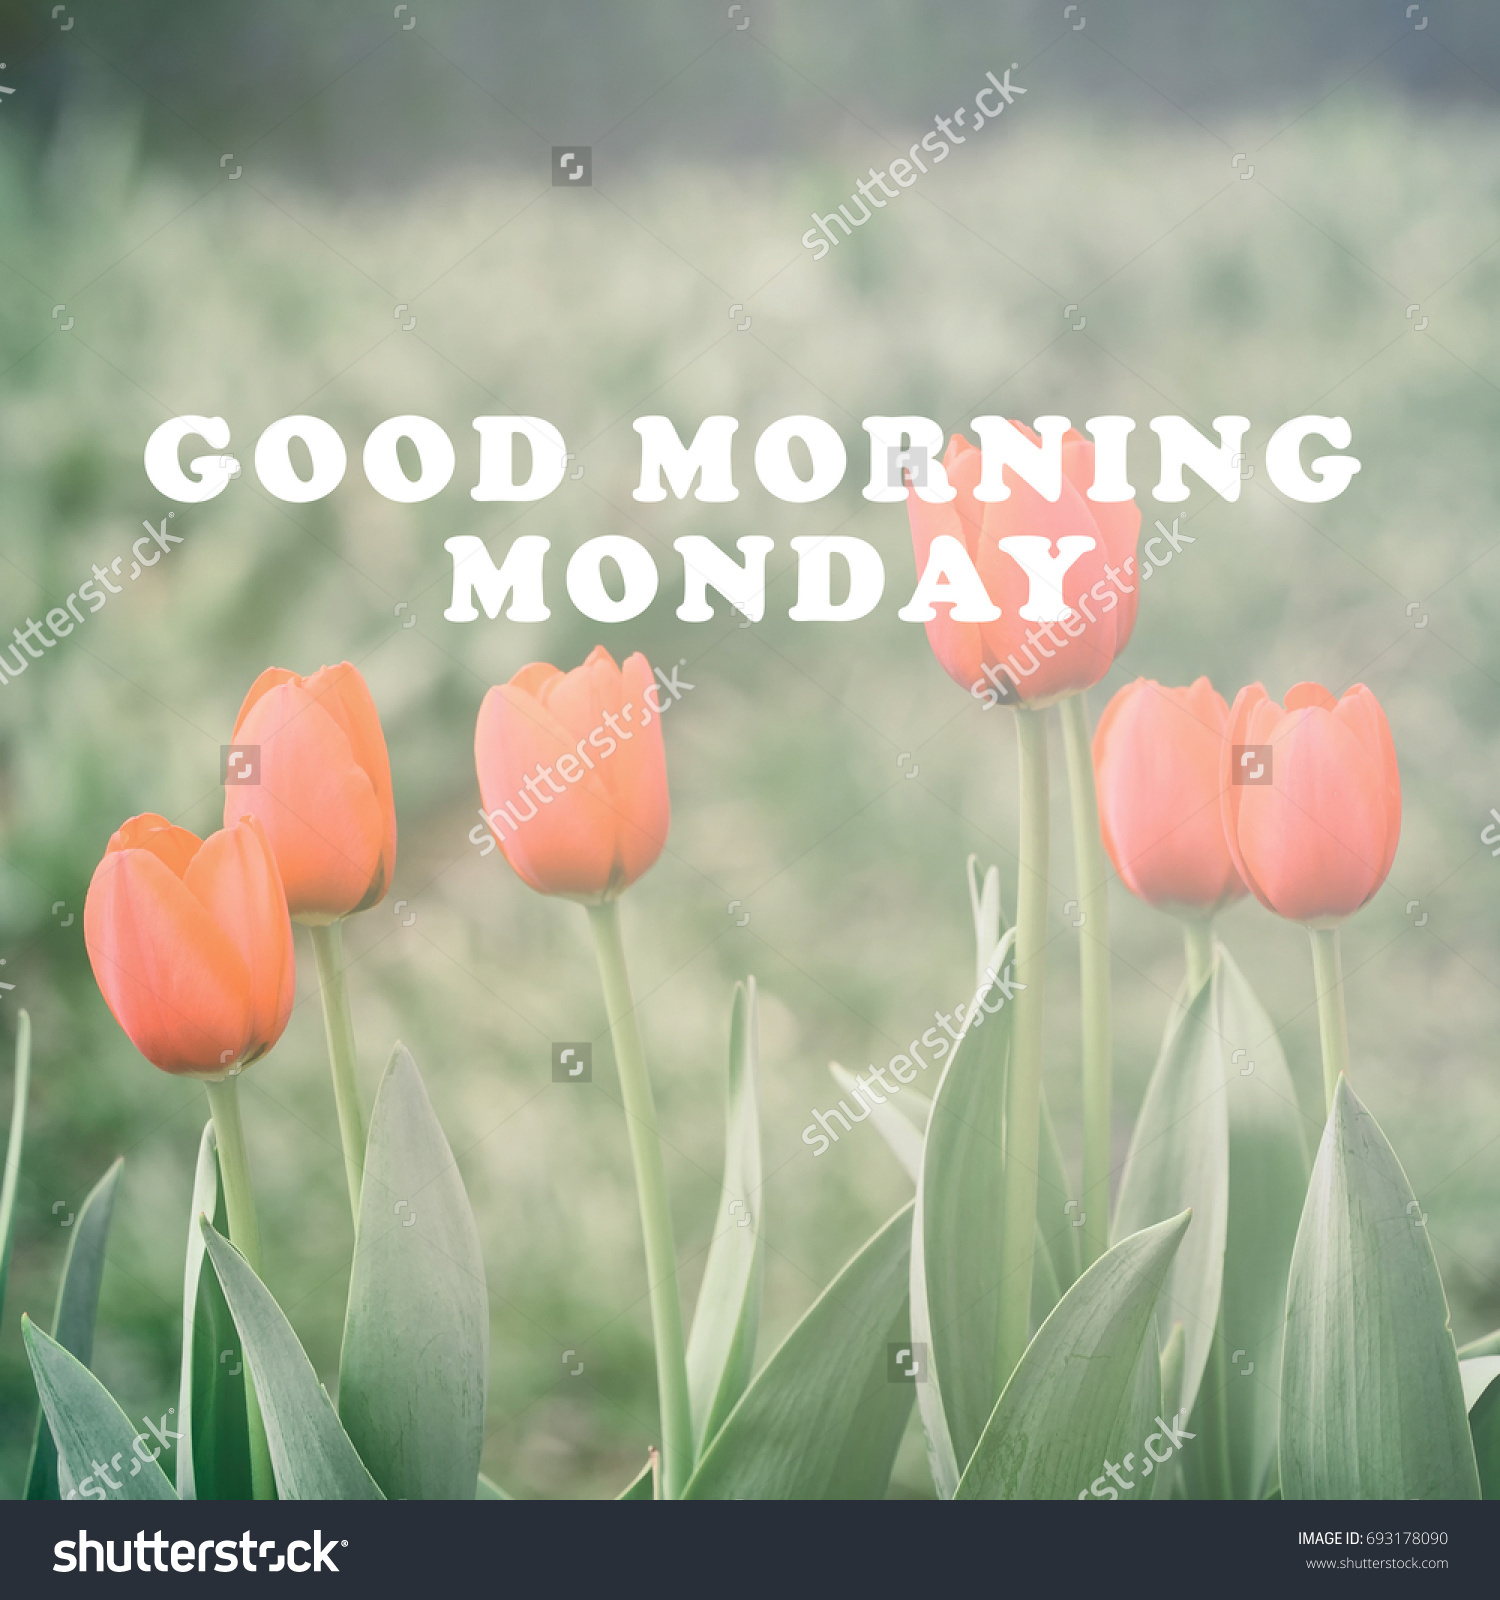 Monday Inspirational Greeting Good Morning Monday Stock Photo Edit